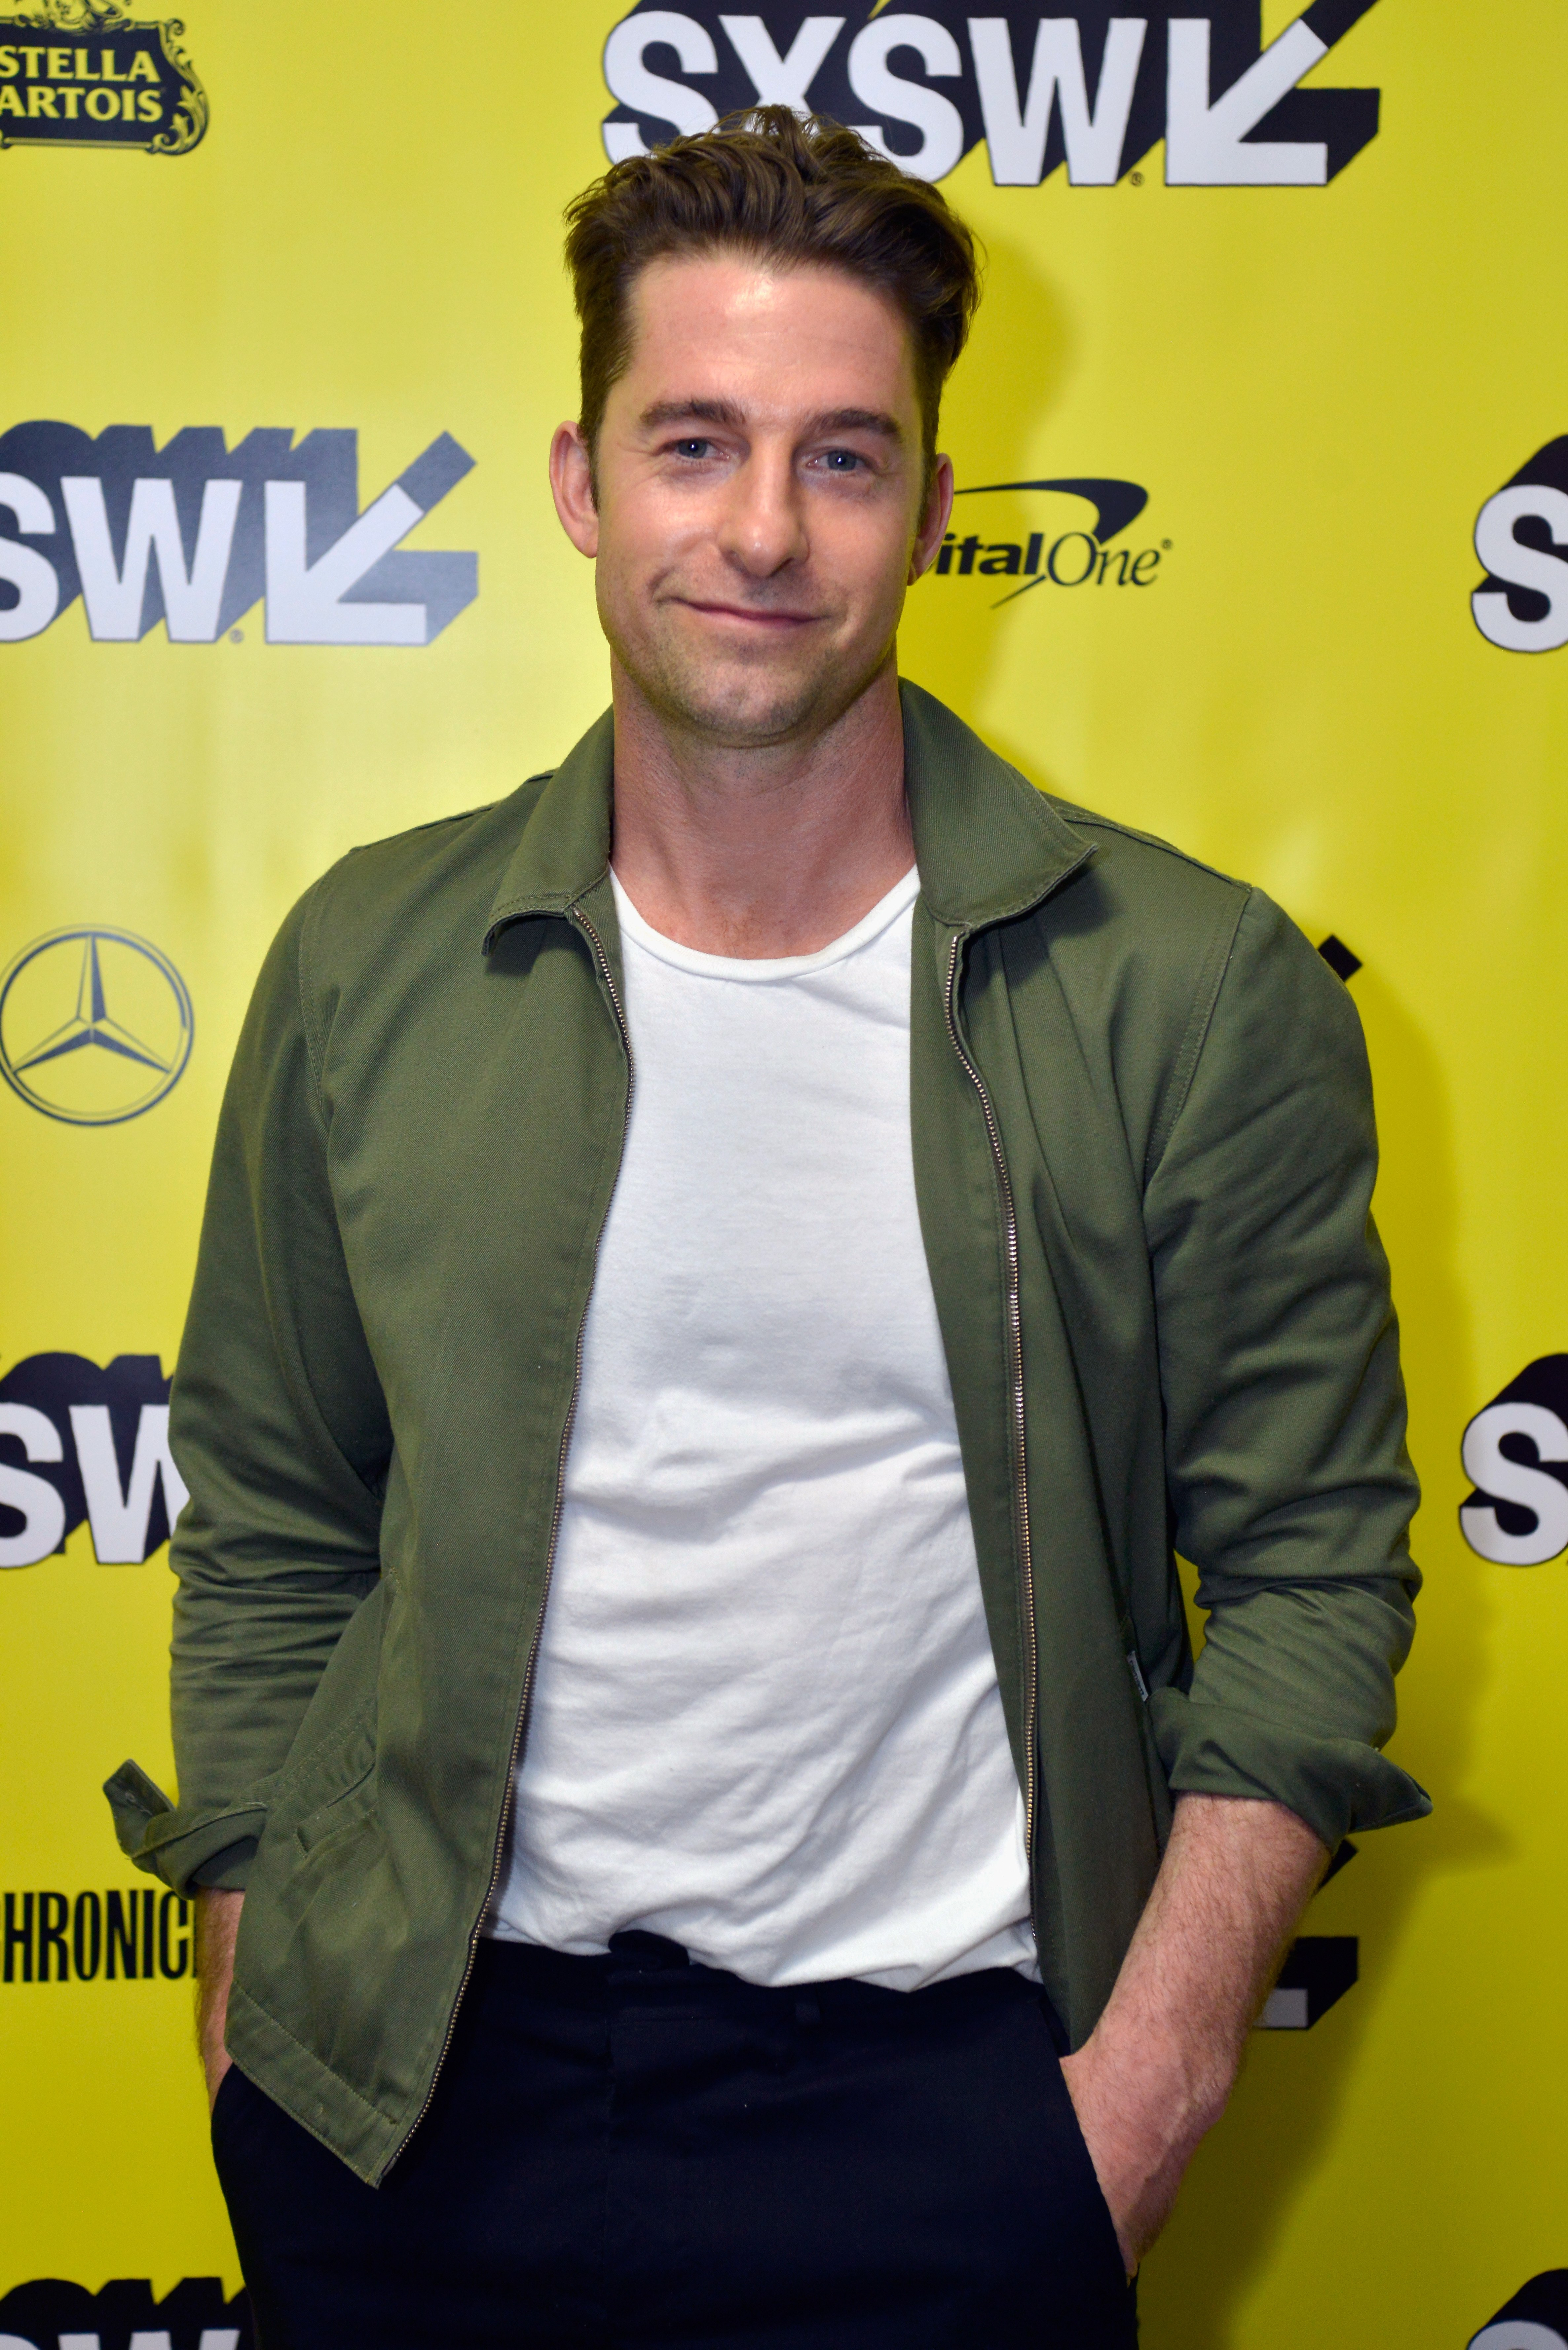 """Image Credits: Getty Images / Nicola Gell 